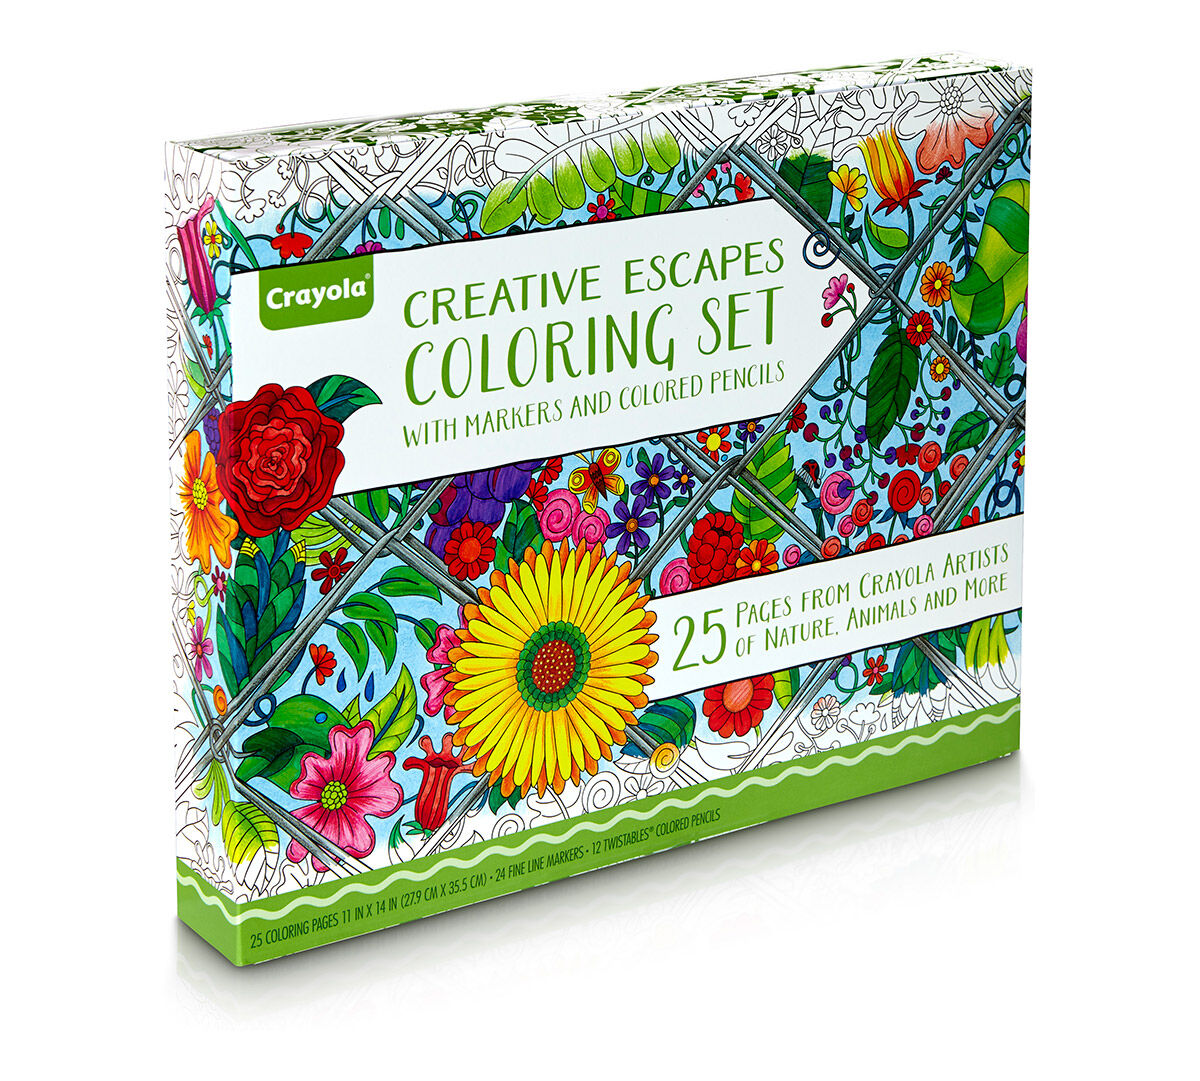 Creative Escapes Coloring Set Large Gift